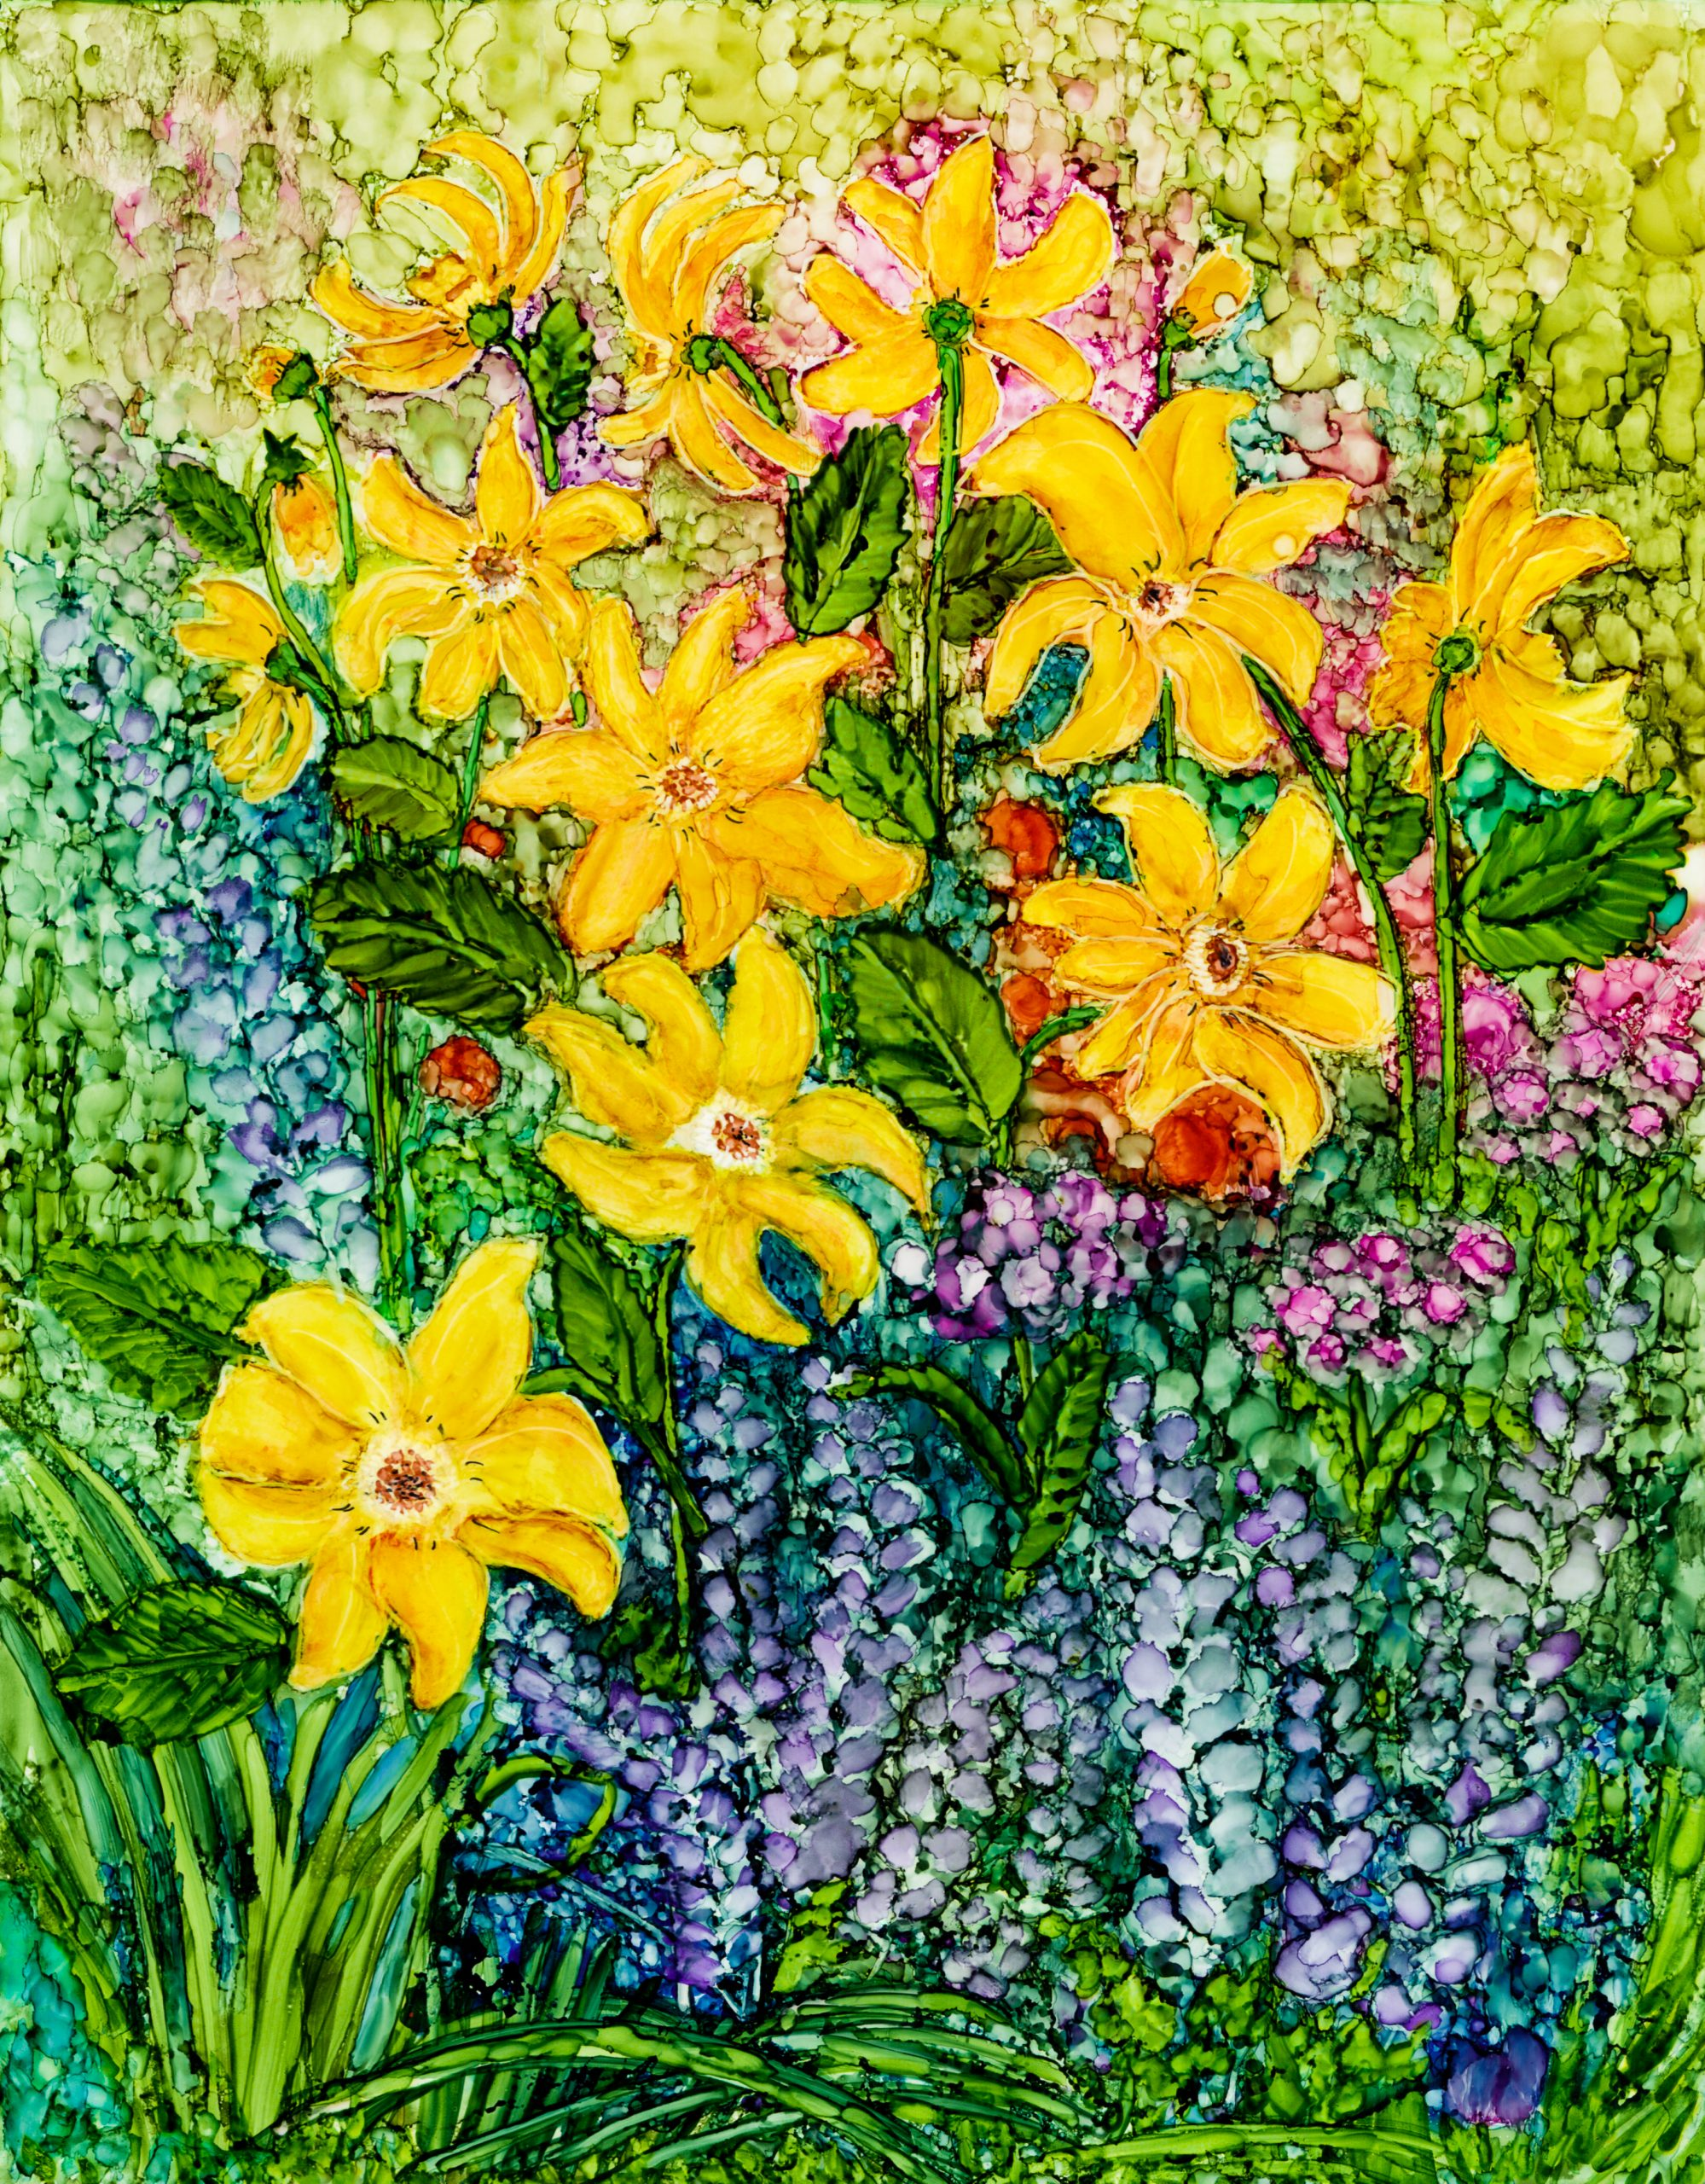 Flower Garden Painting in Alcohol Ink by Korinne Carpino